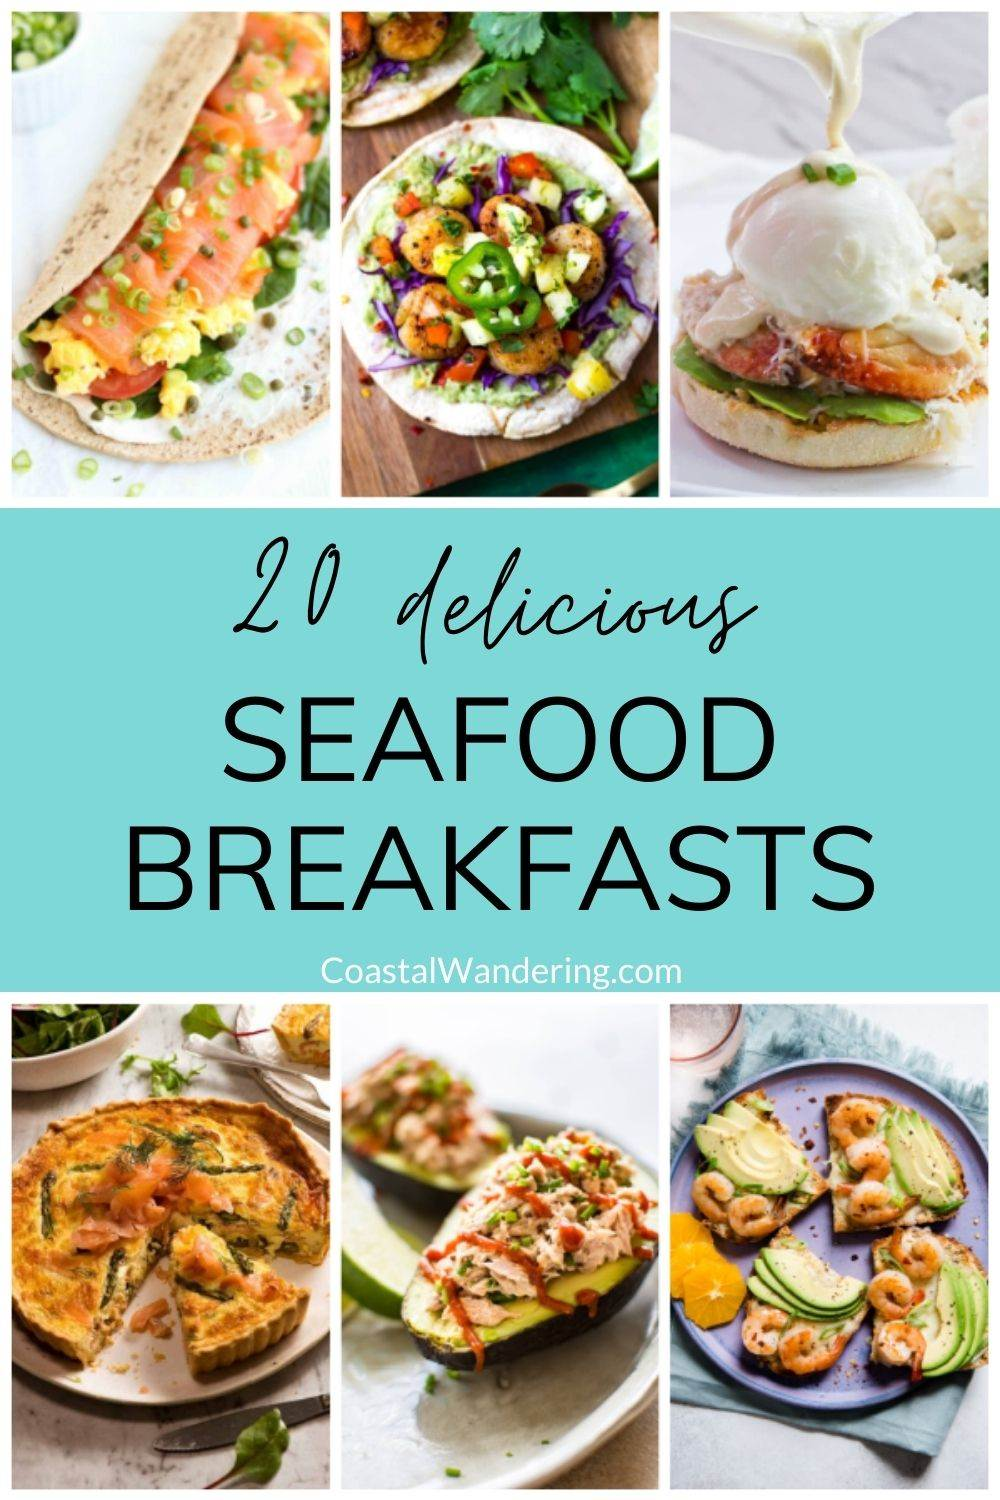 20 Easy Seafood Breakfast Recipes